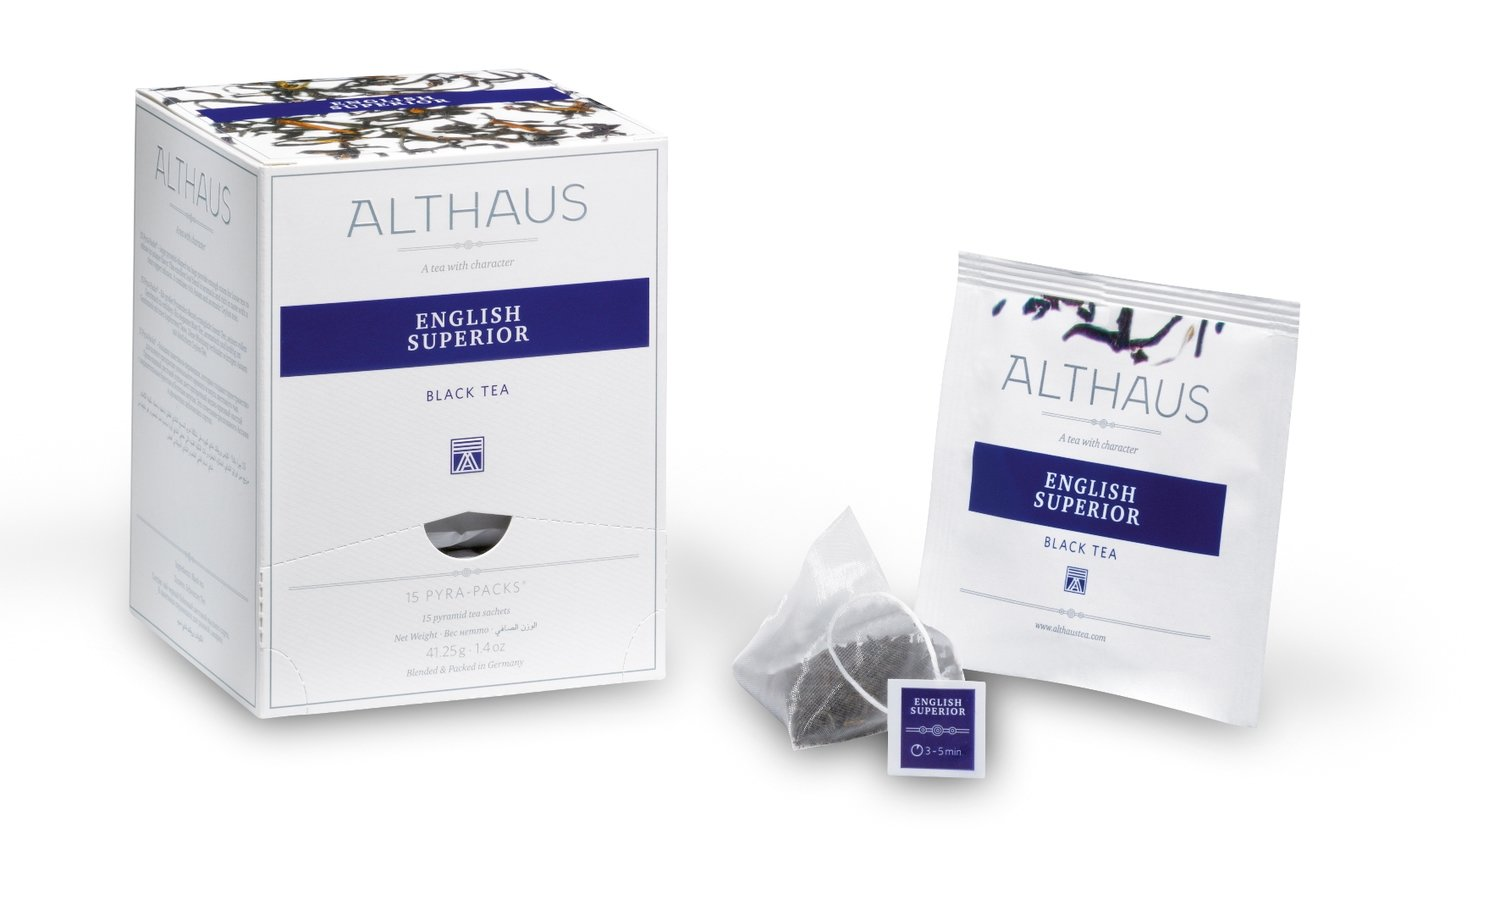 Althaus Pyra Pack English Superior